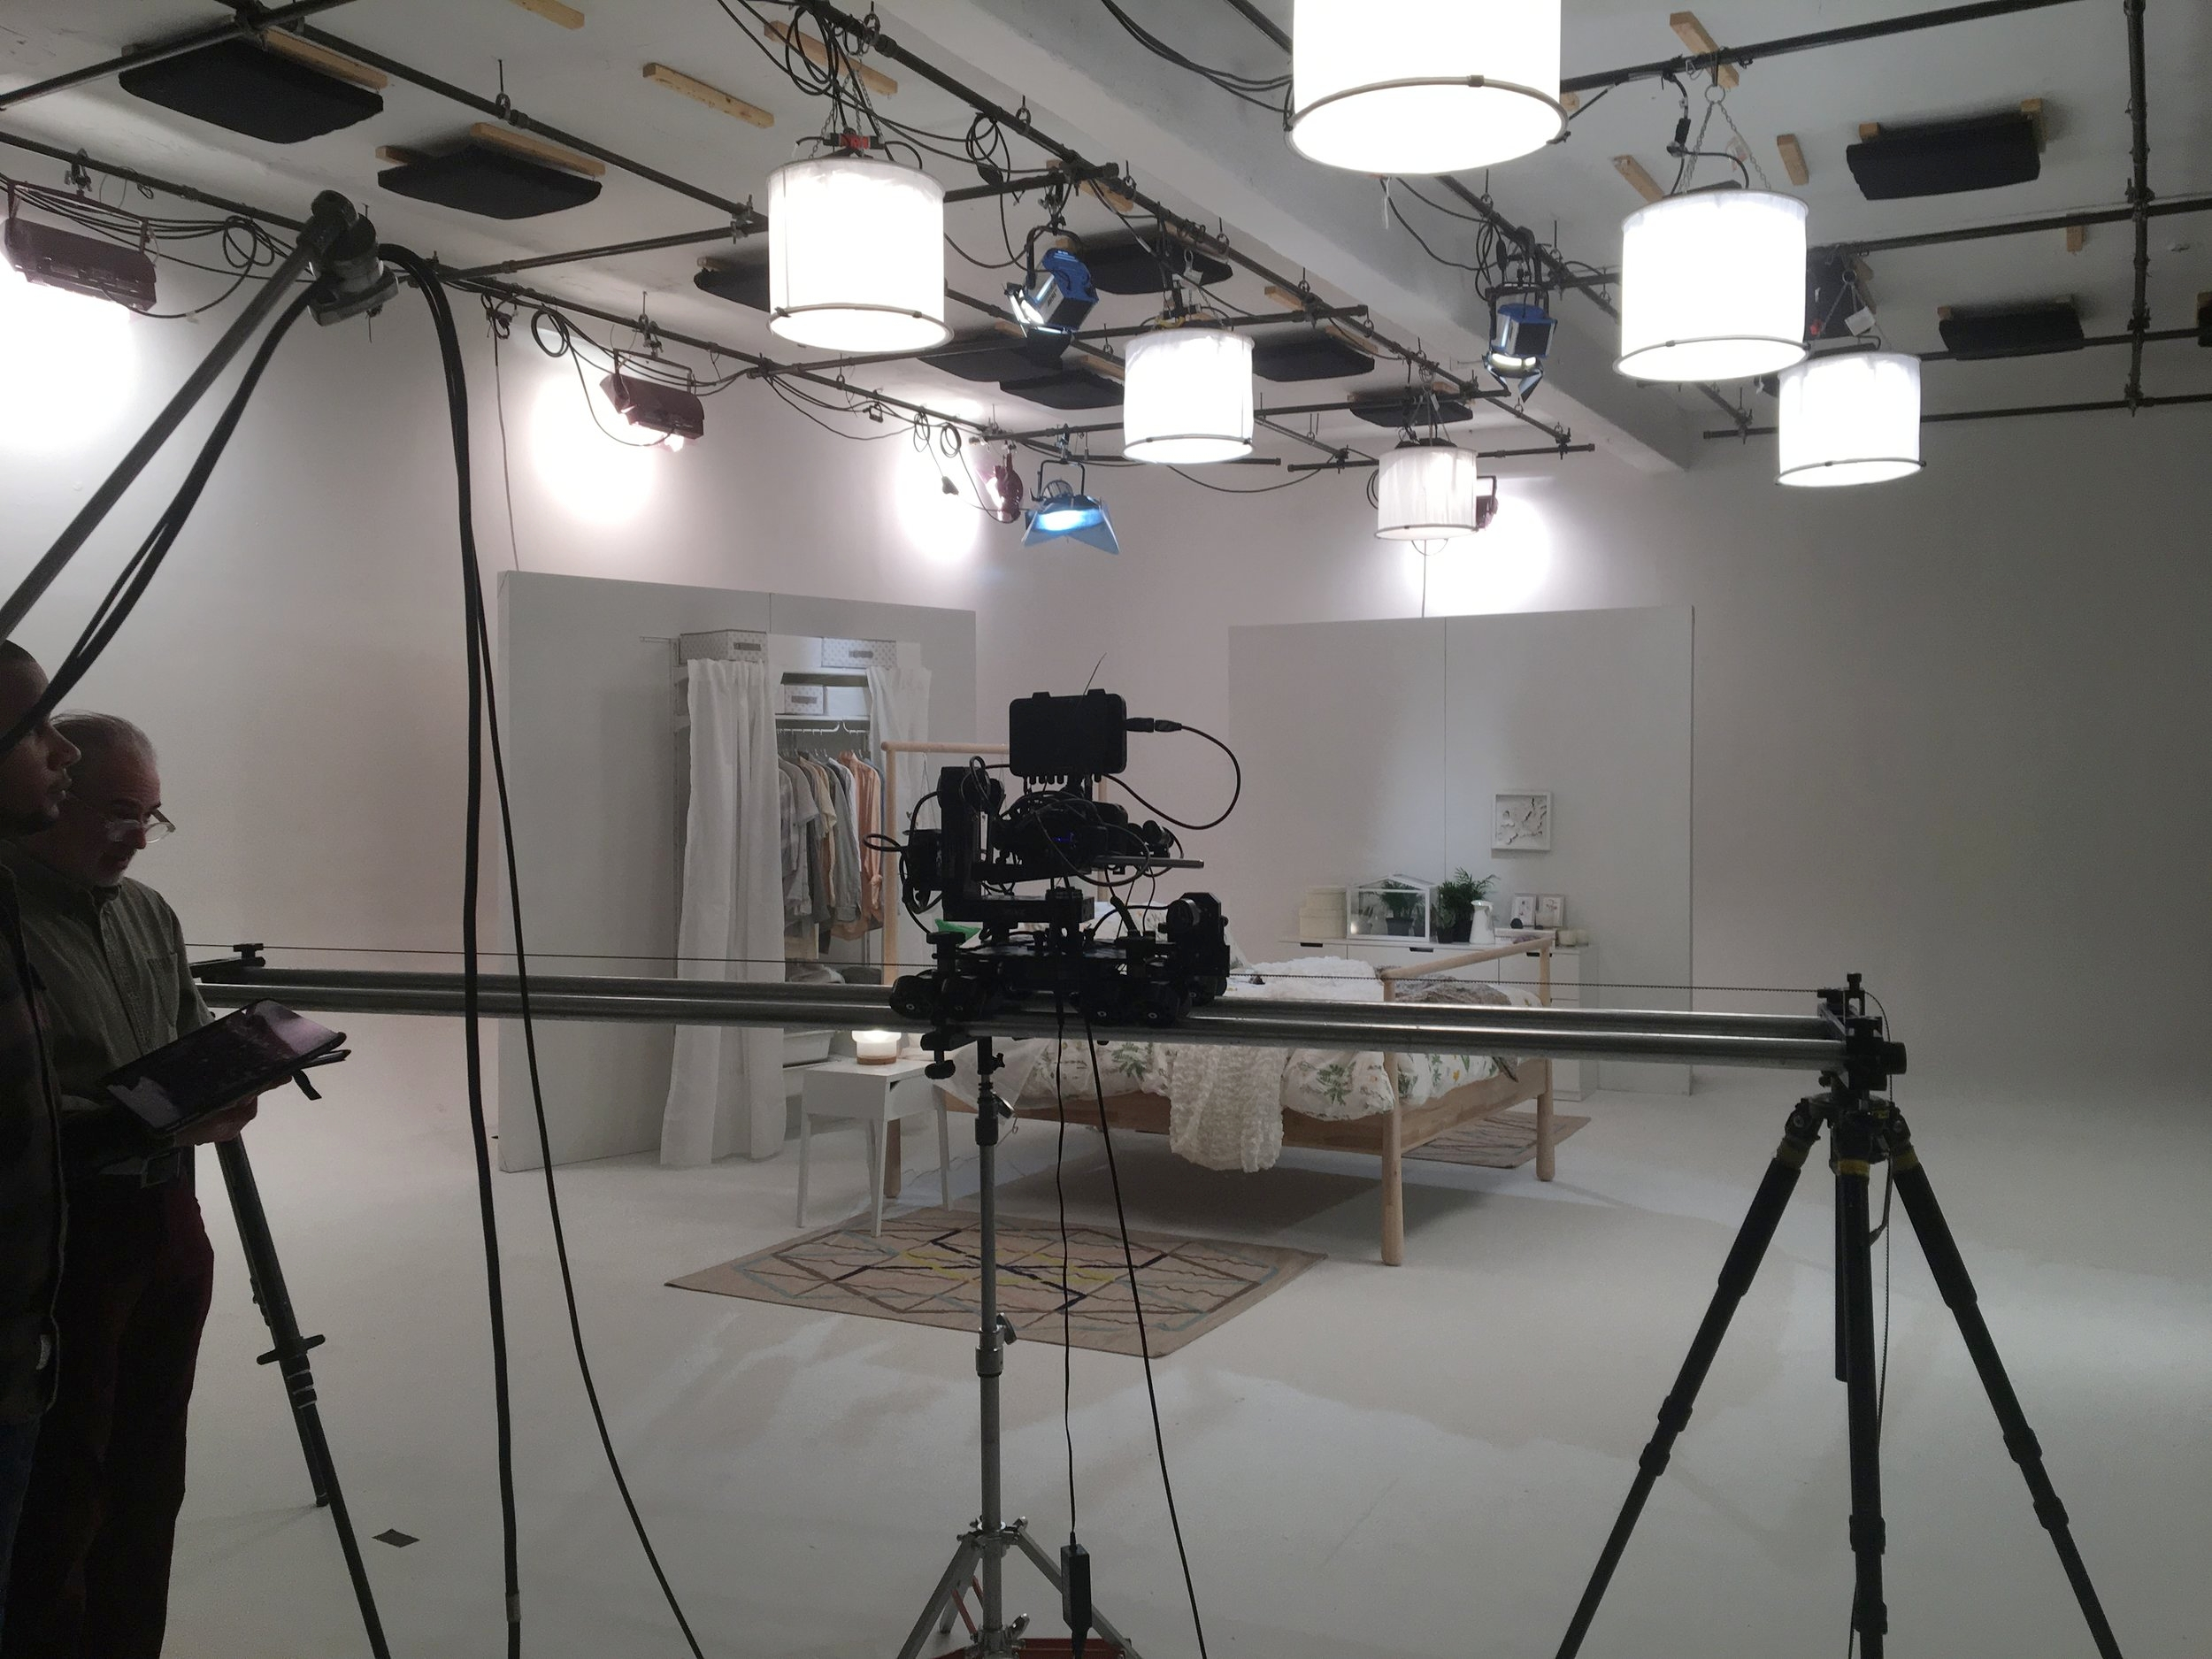 Time Inc using our film studio/soundstage to shoot a time lapse for IKEA furniture .